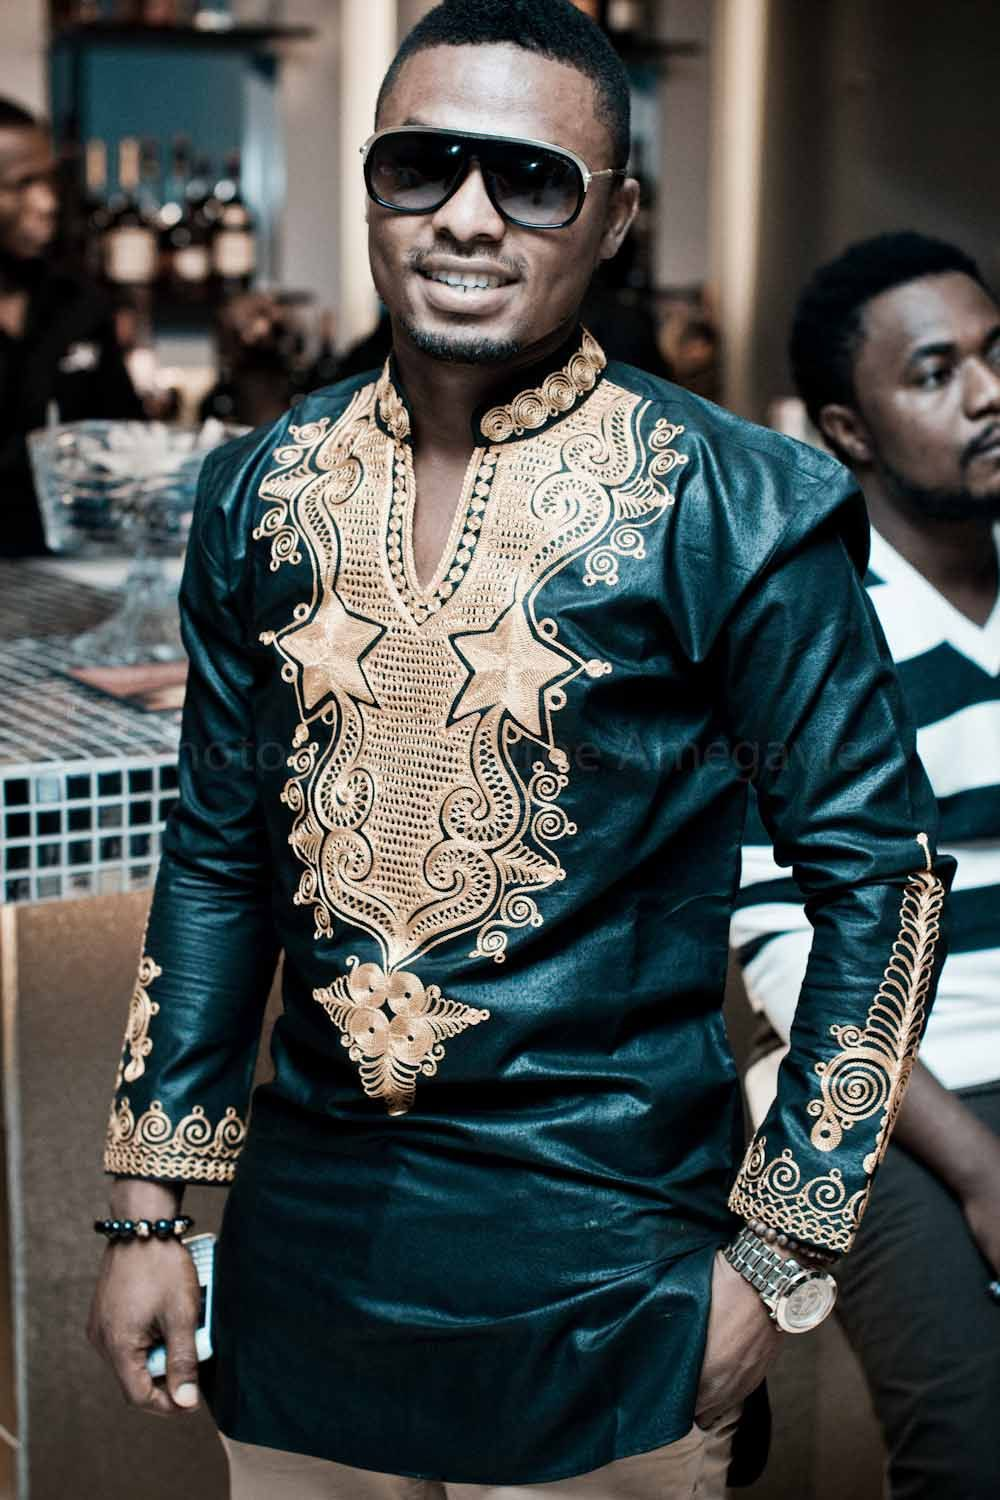 http://naijasfinnest.tumblr.com/post/45049698855/ofoesaysit-style-ghana-cool-photography-by